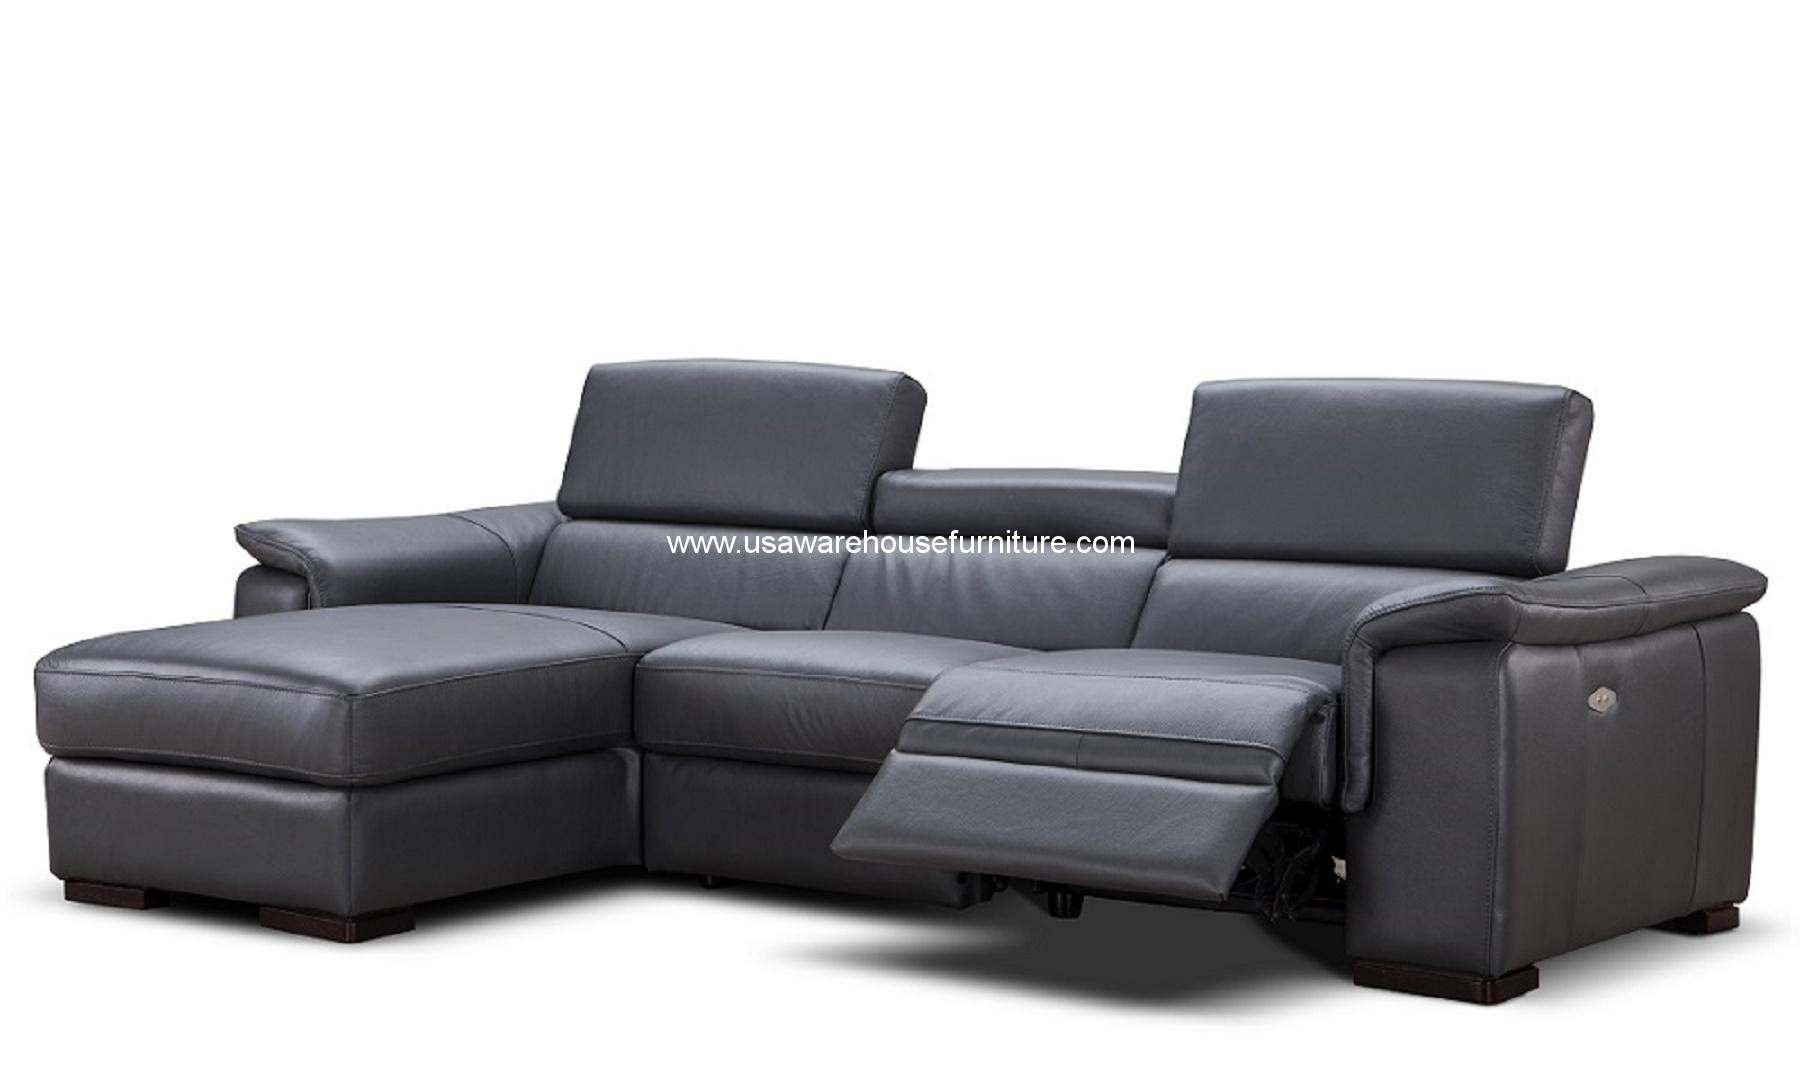 Alba Premium Leather Power Reclining Sectional